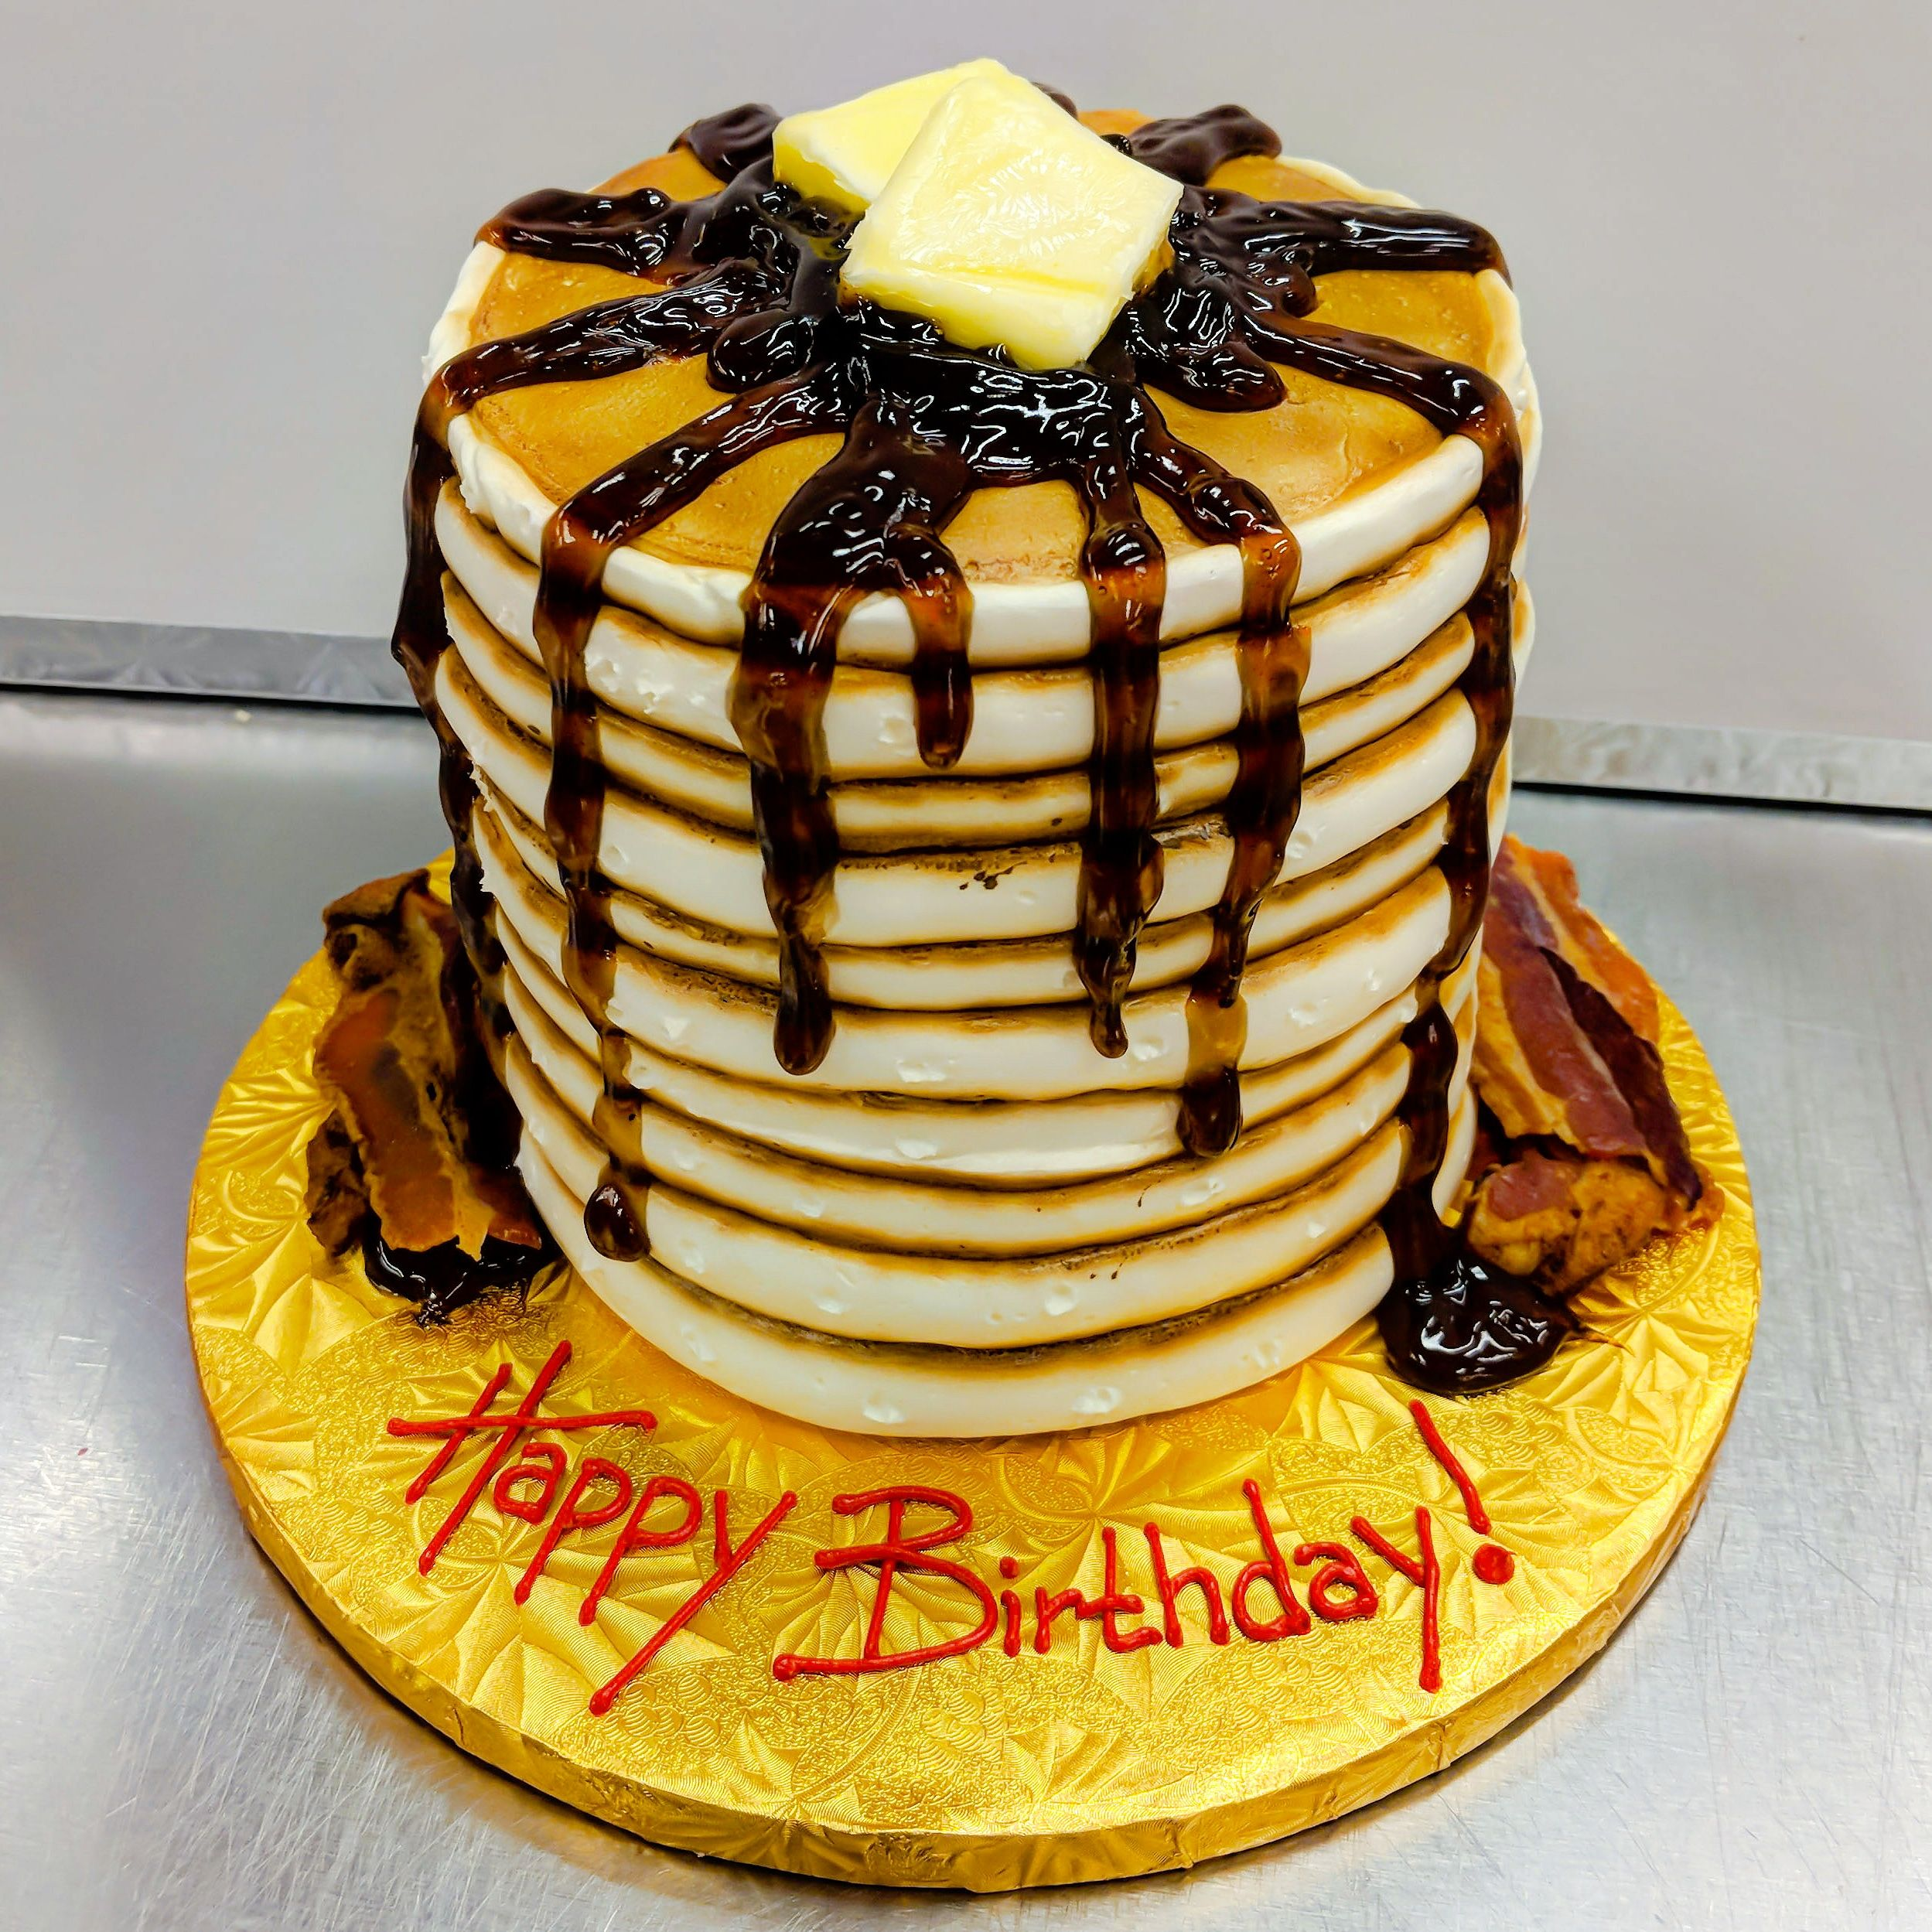 Fun Birthday Cake Idea For A Breakfast Lover Almost Looks Like The